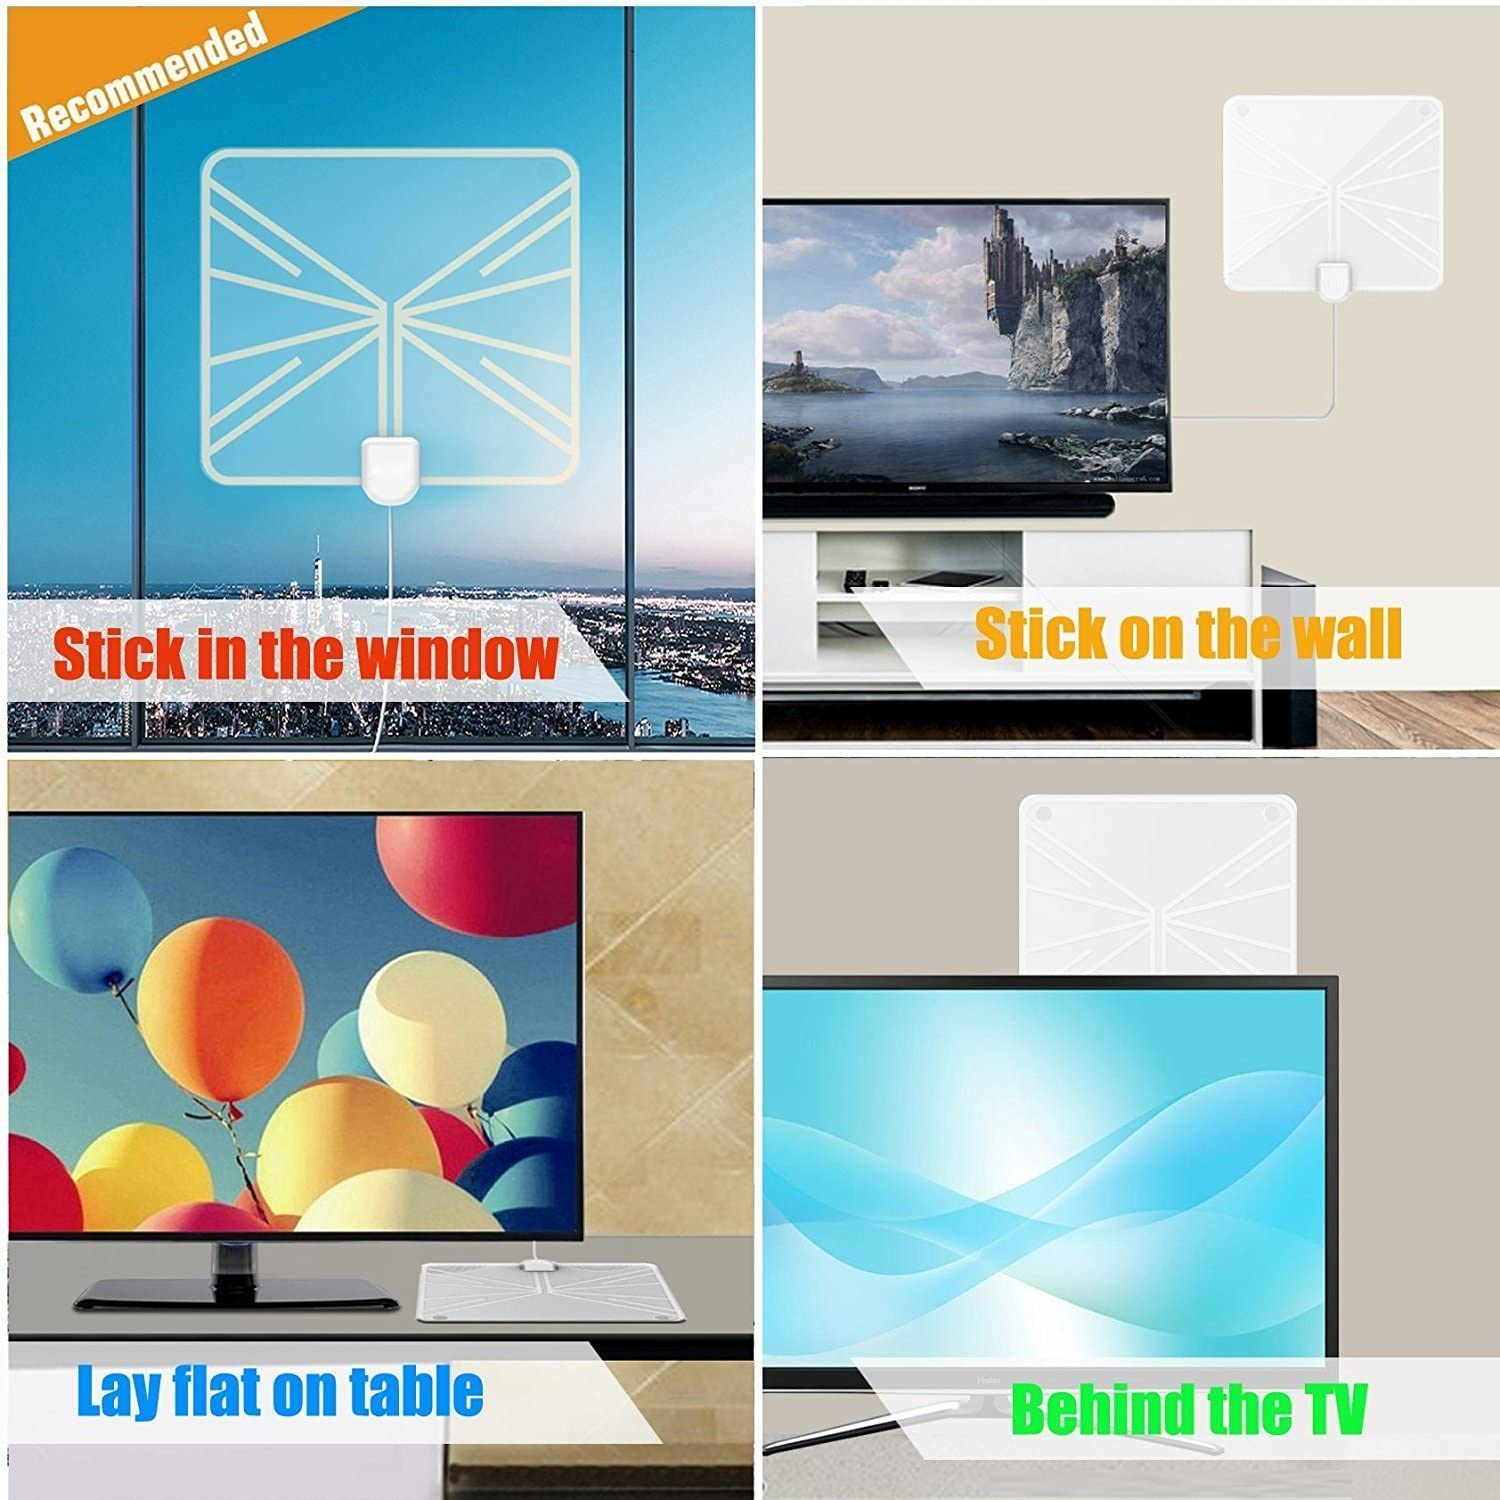 HD Digital Antenna Indoor TV Antenna Long Range Amplified HDTV Antenna 60 to 70 Miles with 13.12 Feet Coaxial Cable